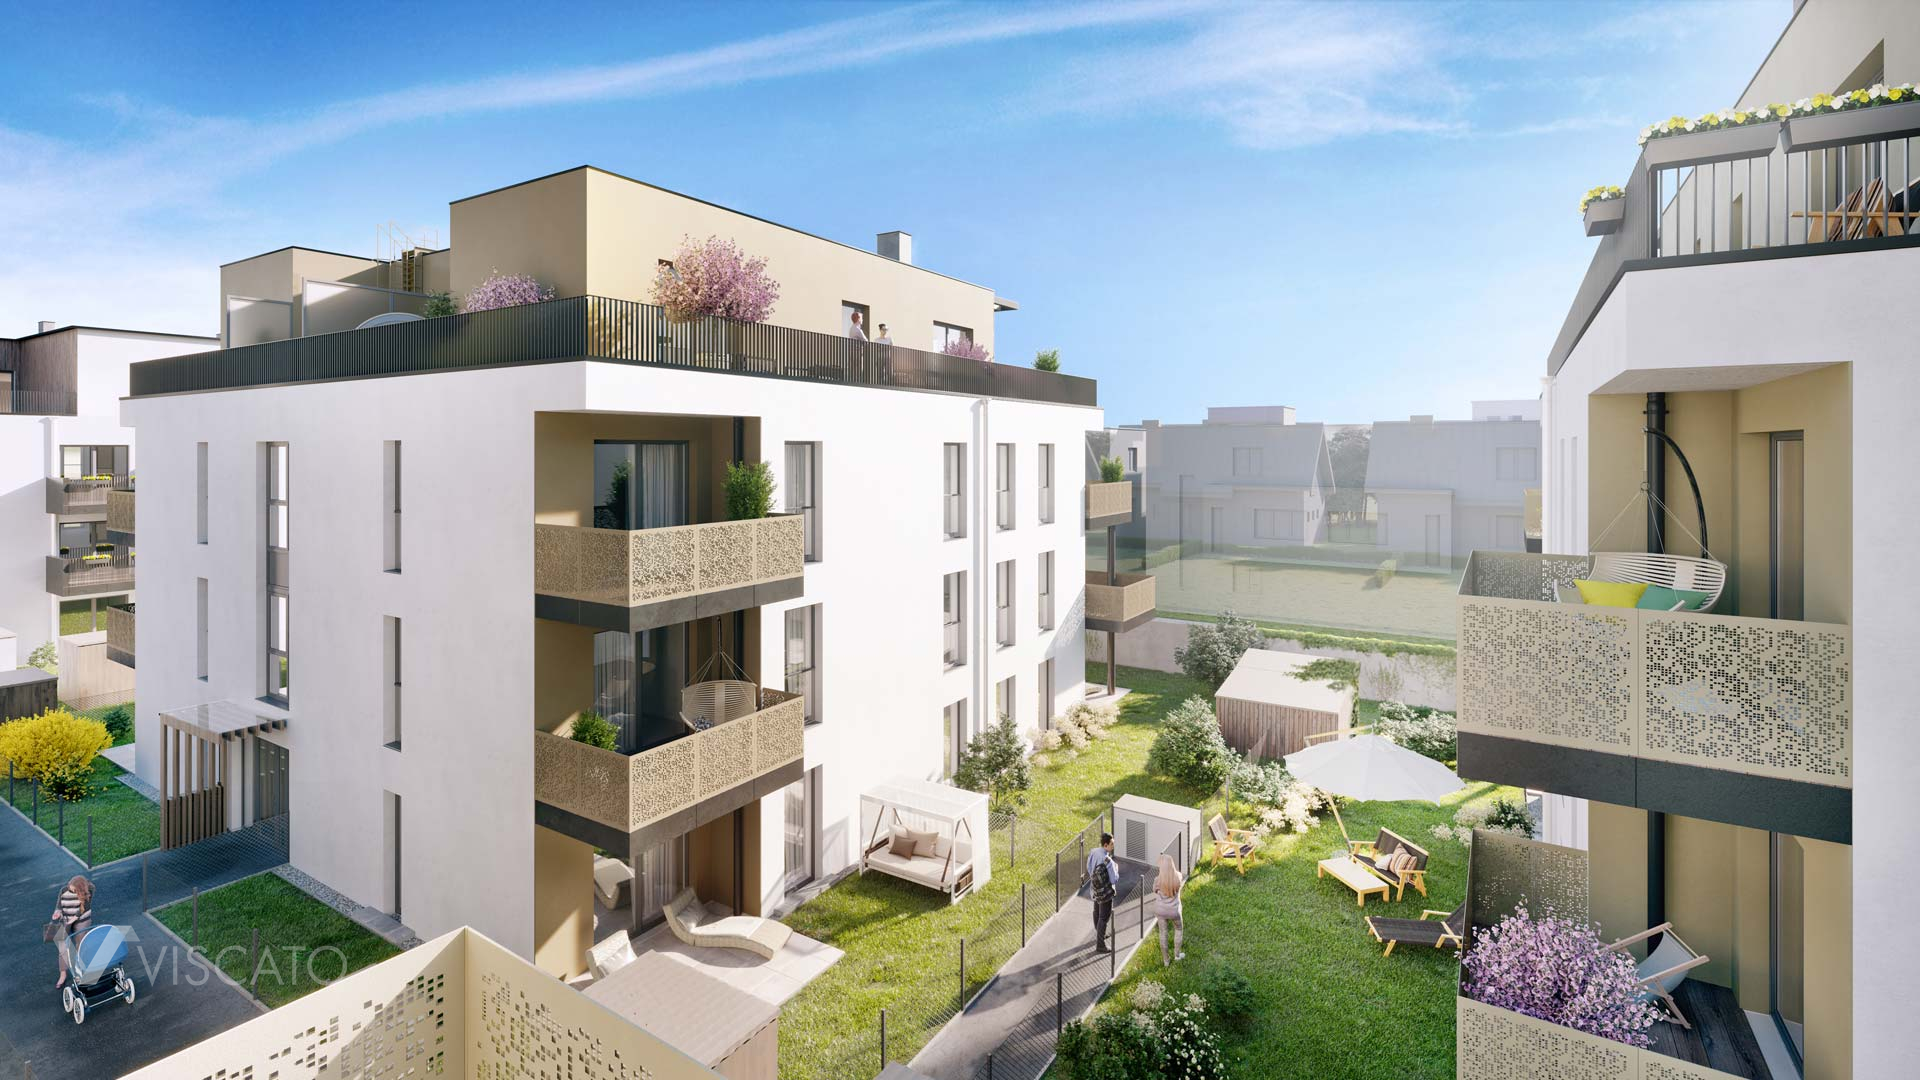 block of flats with balconies and terraces, Viscato 3D